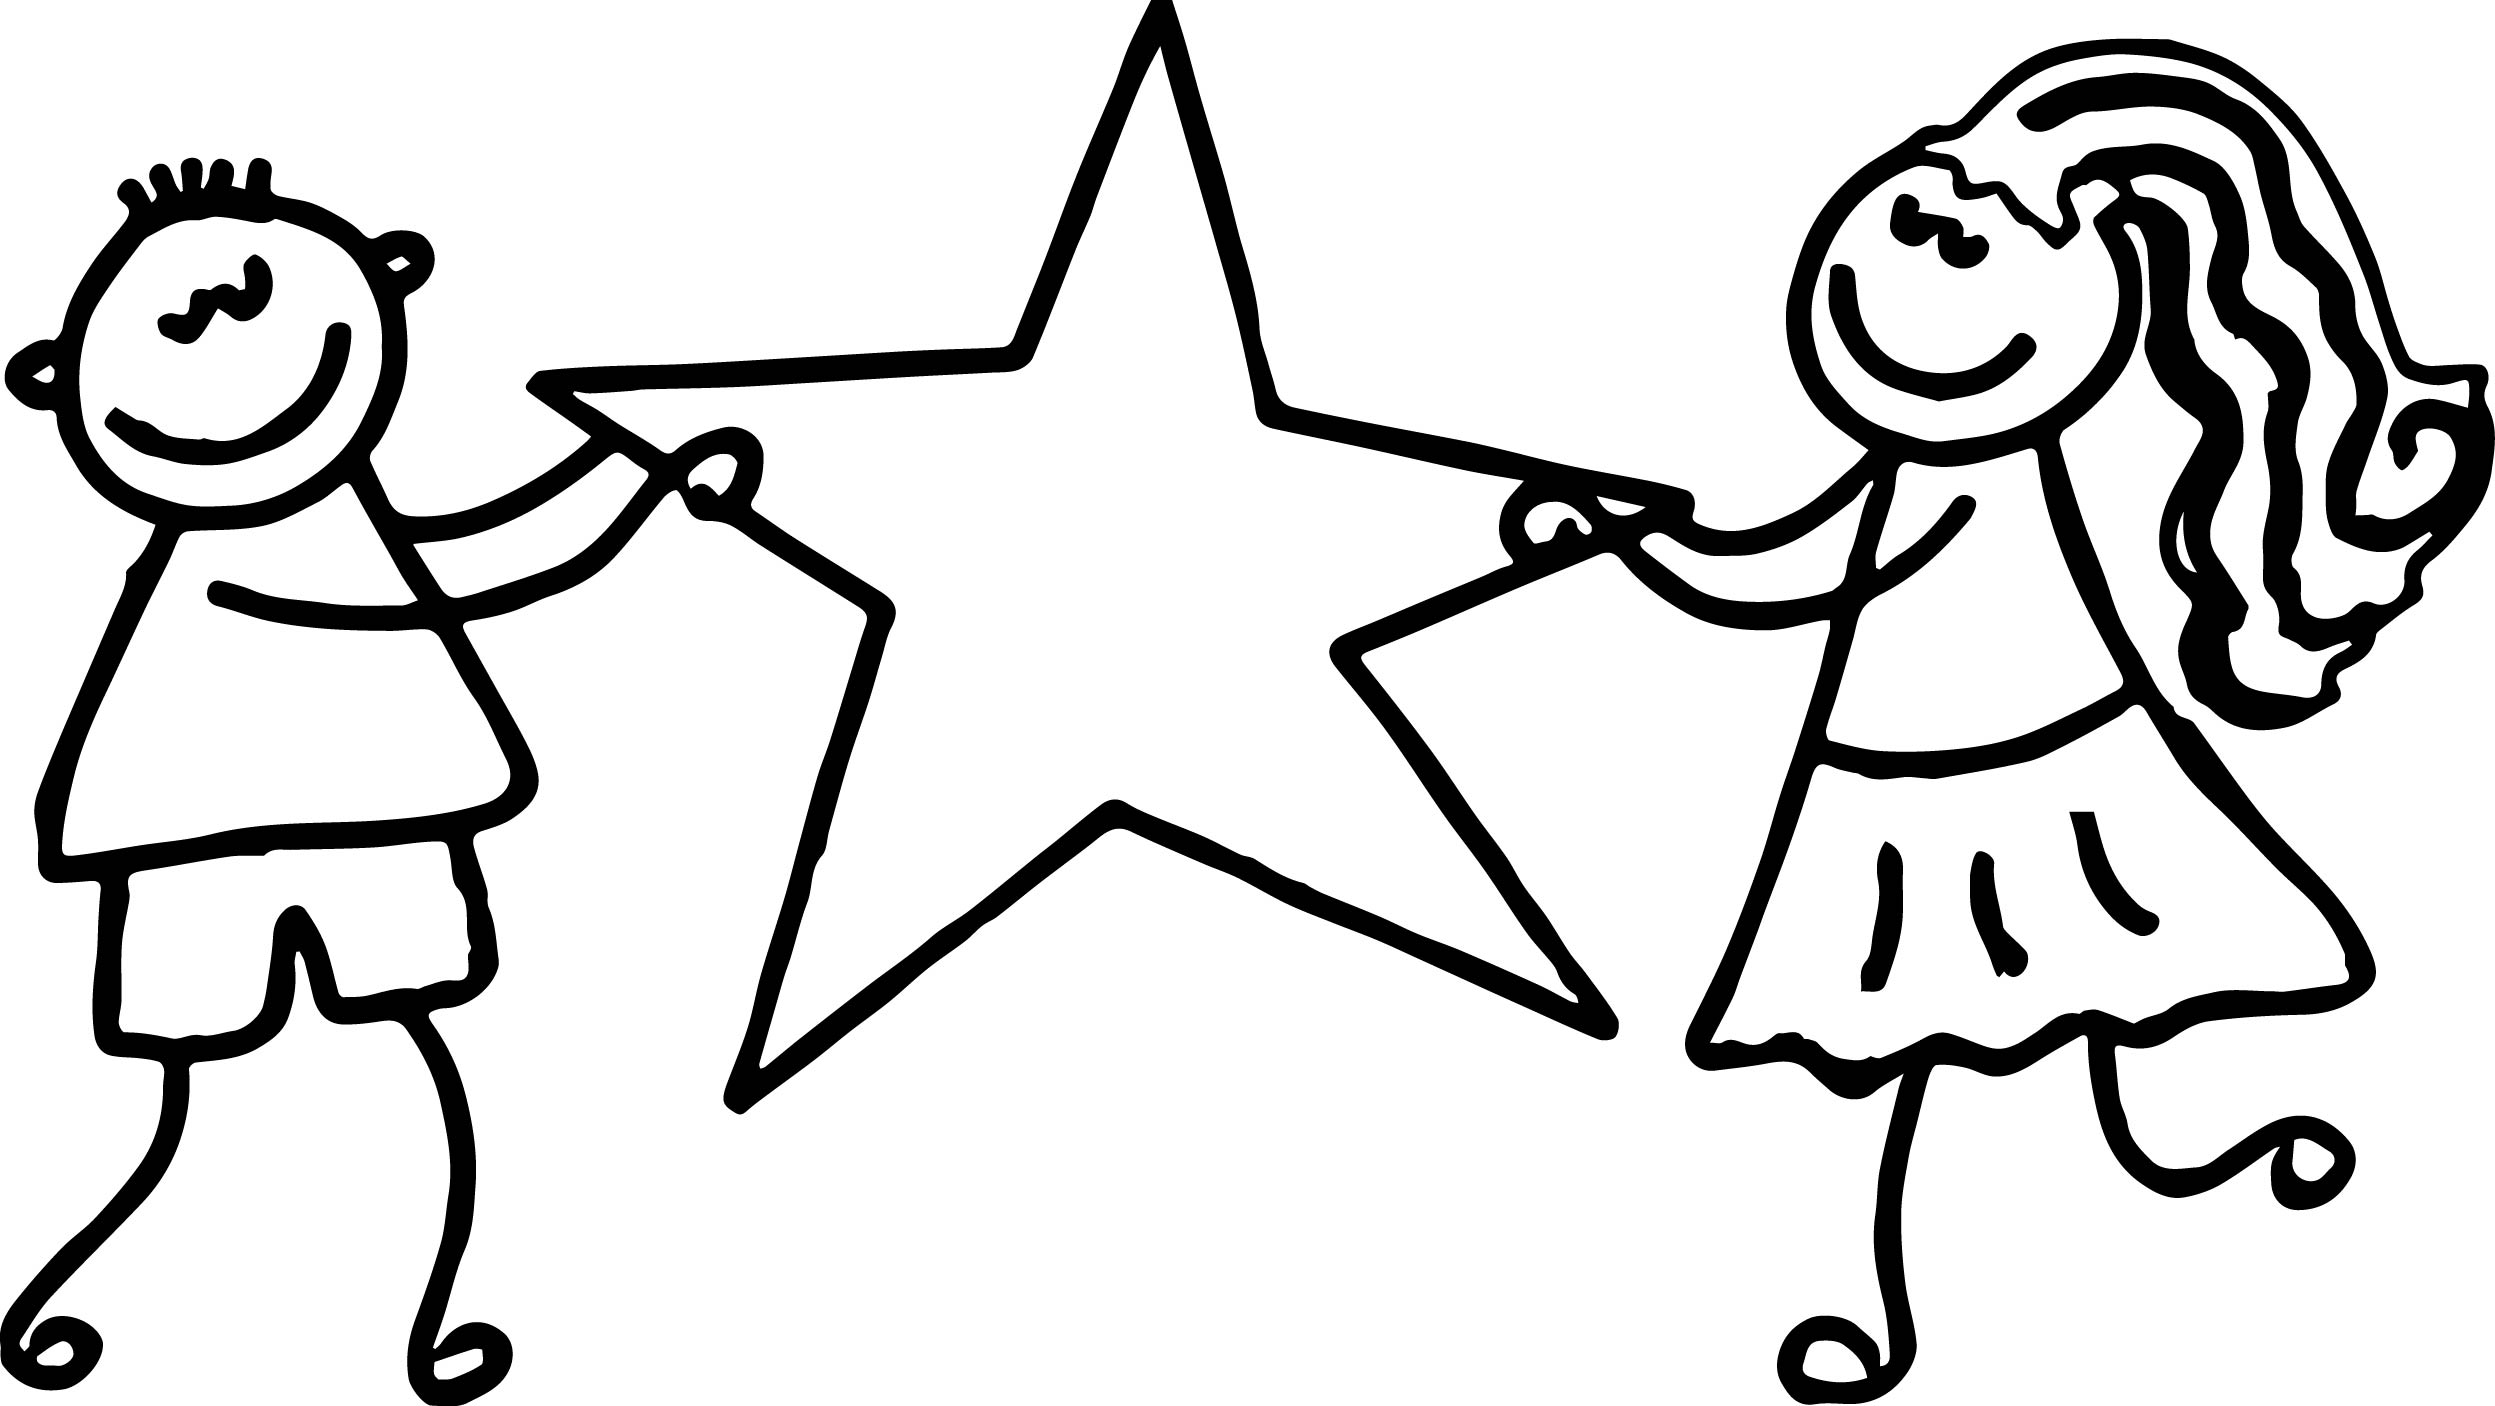 Kids Girl Boy Hold Star 3rd Grade Coloring Page